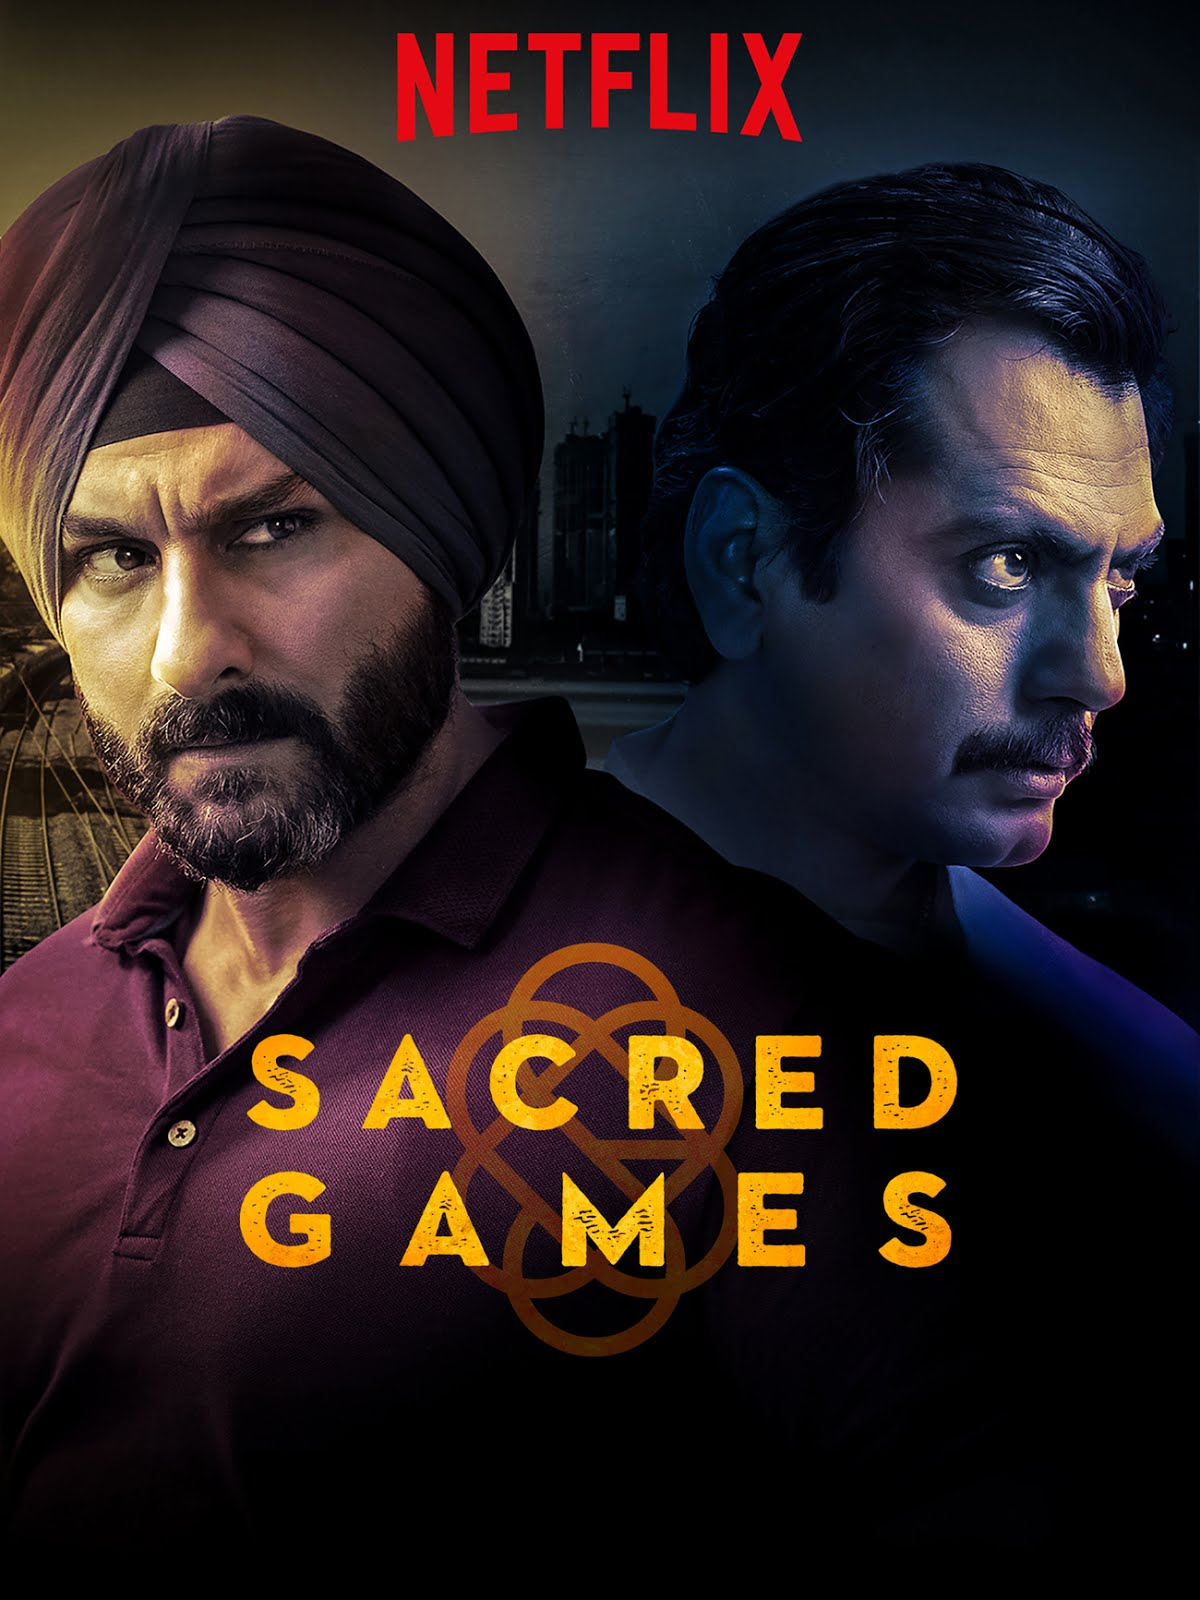 Sacred Games Season 2 Release Date Will Be Out Soon